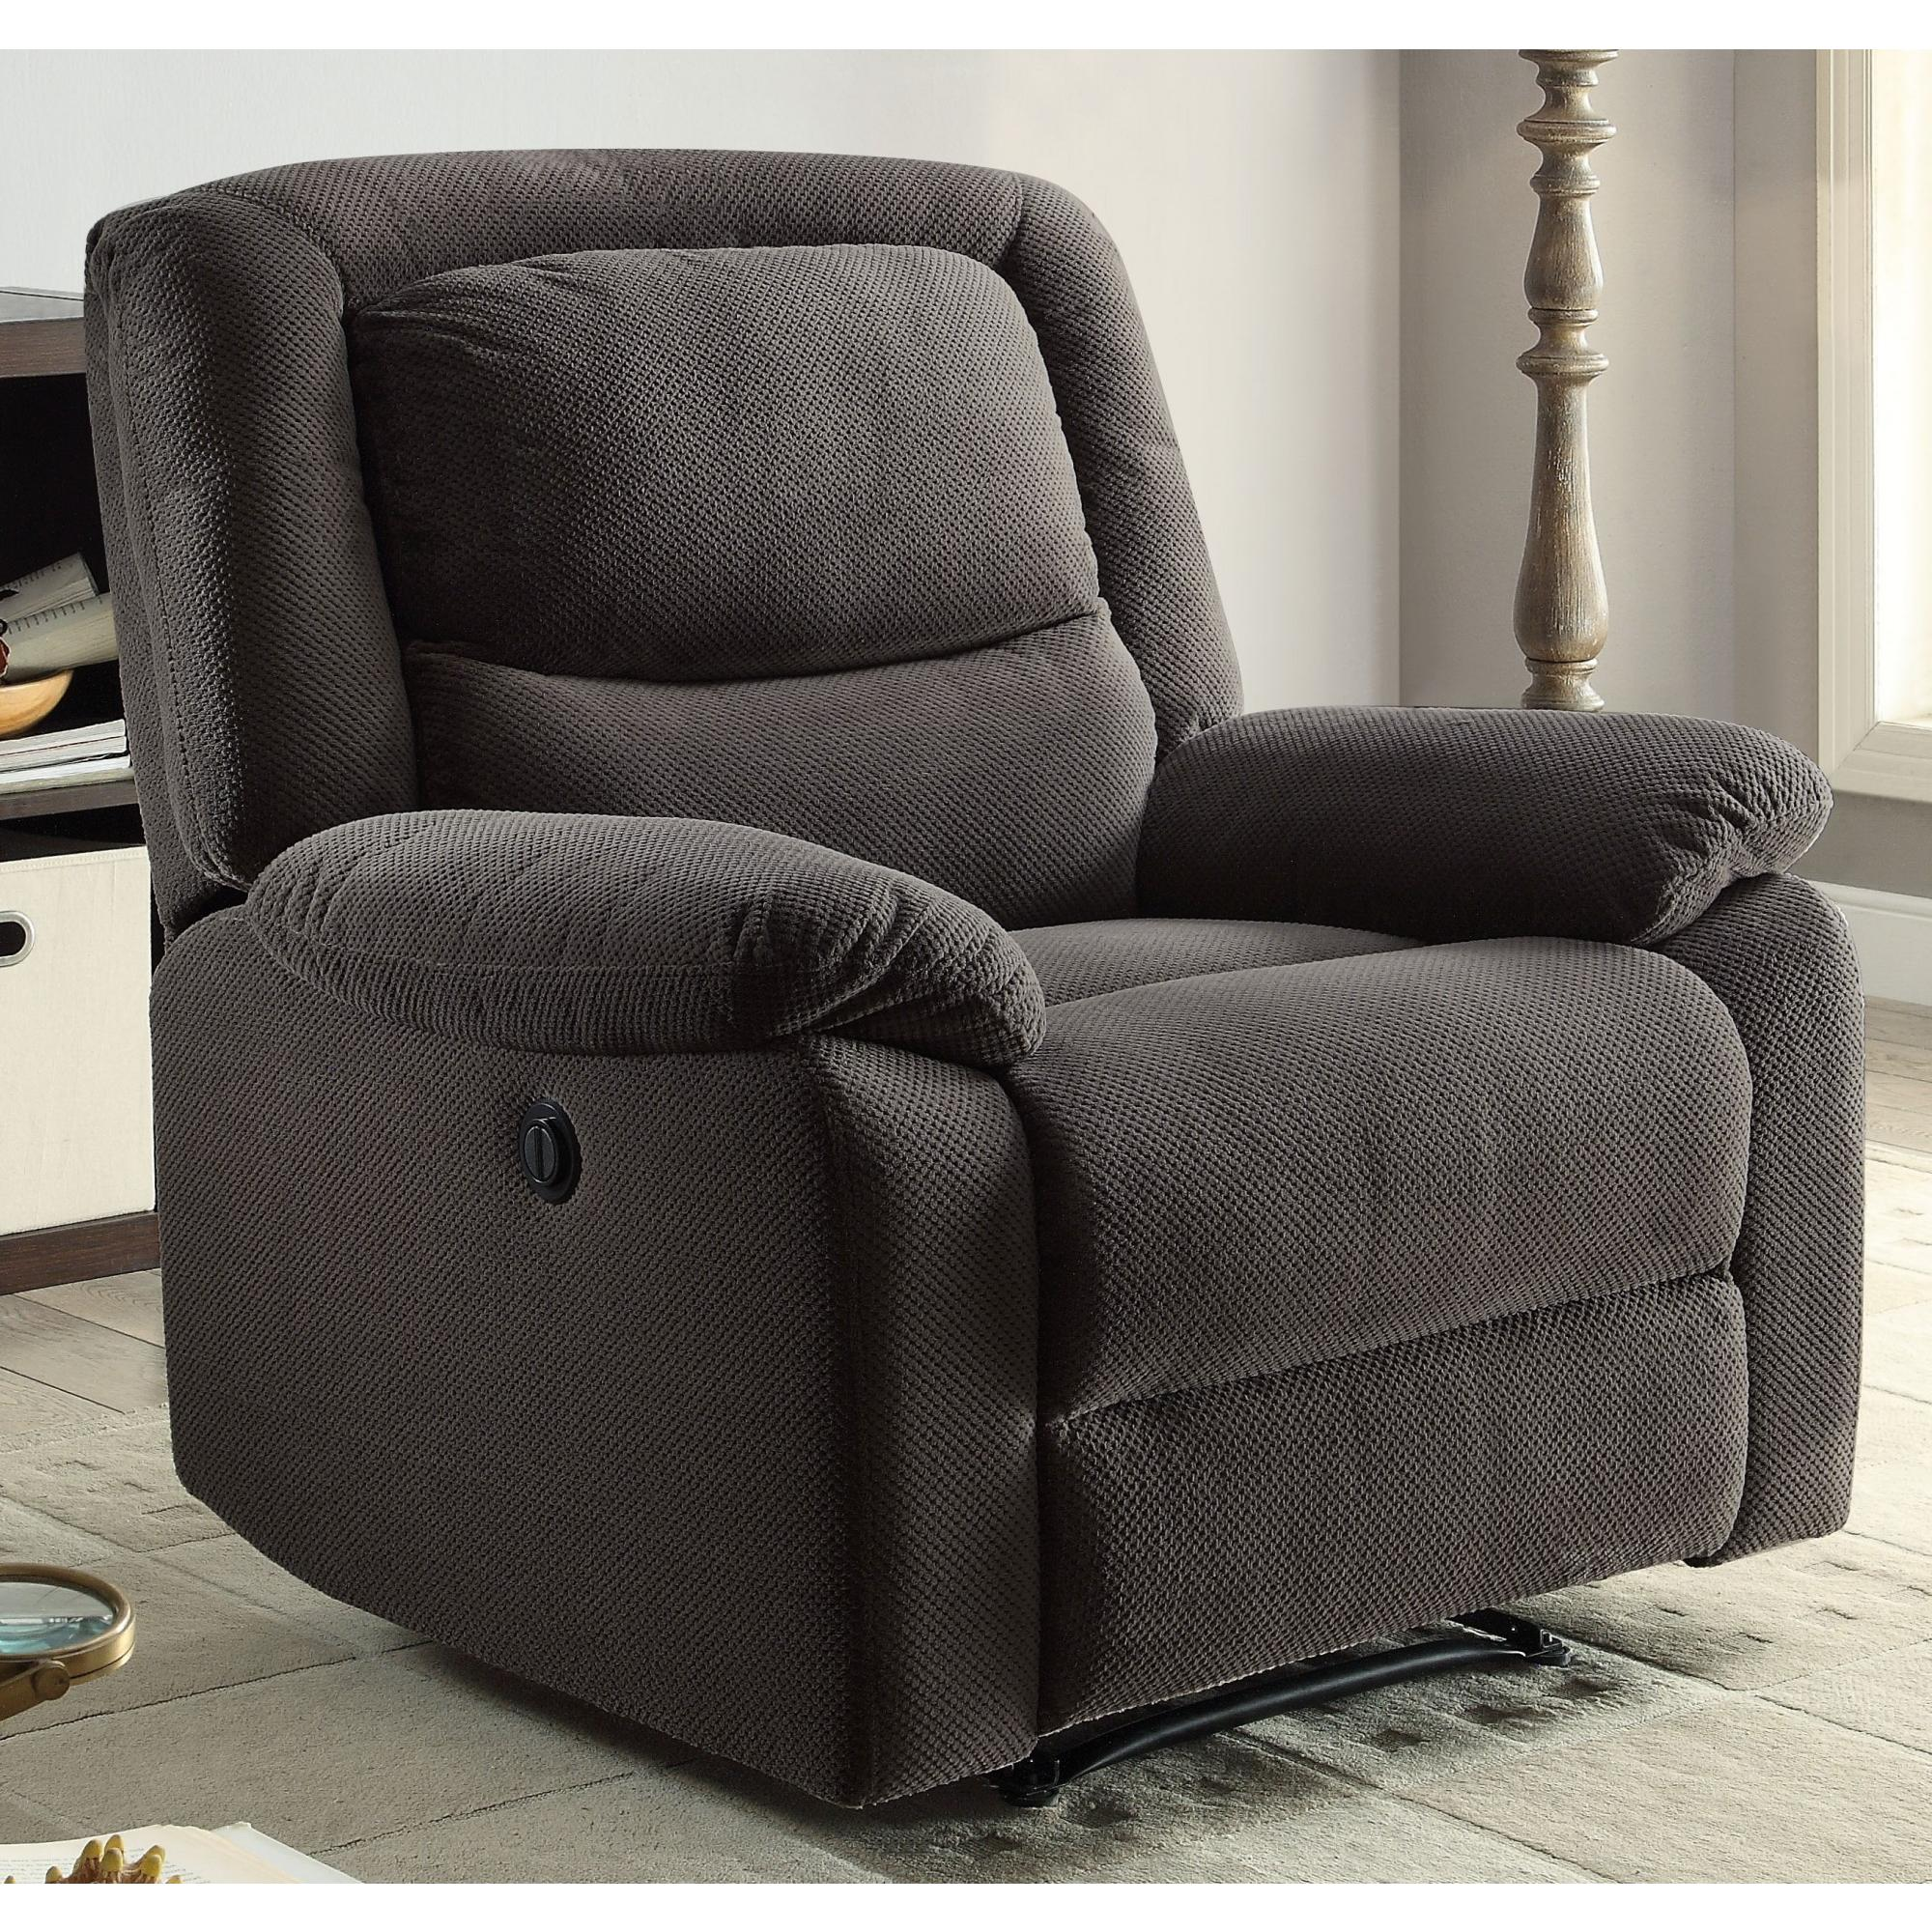 Recliner Pillow Serta Push Button Power Recliner With Deep Body Cushions Ultra Comfortable Reclining Chair Multiple Colors